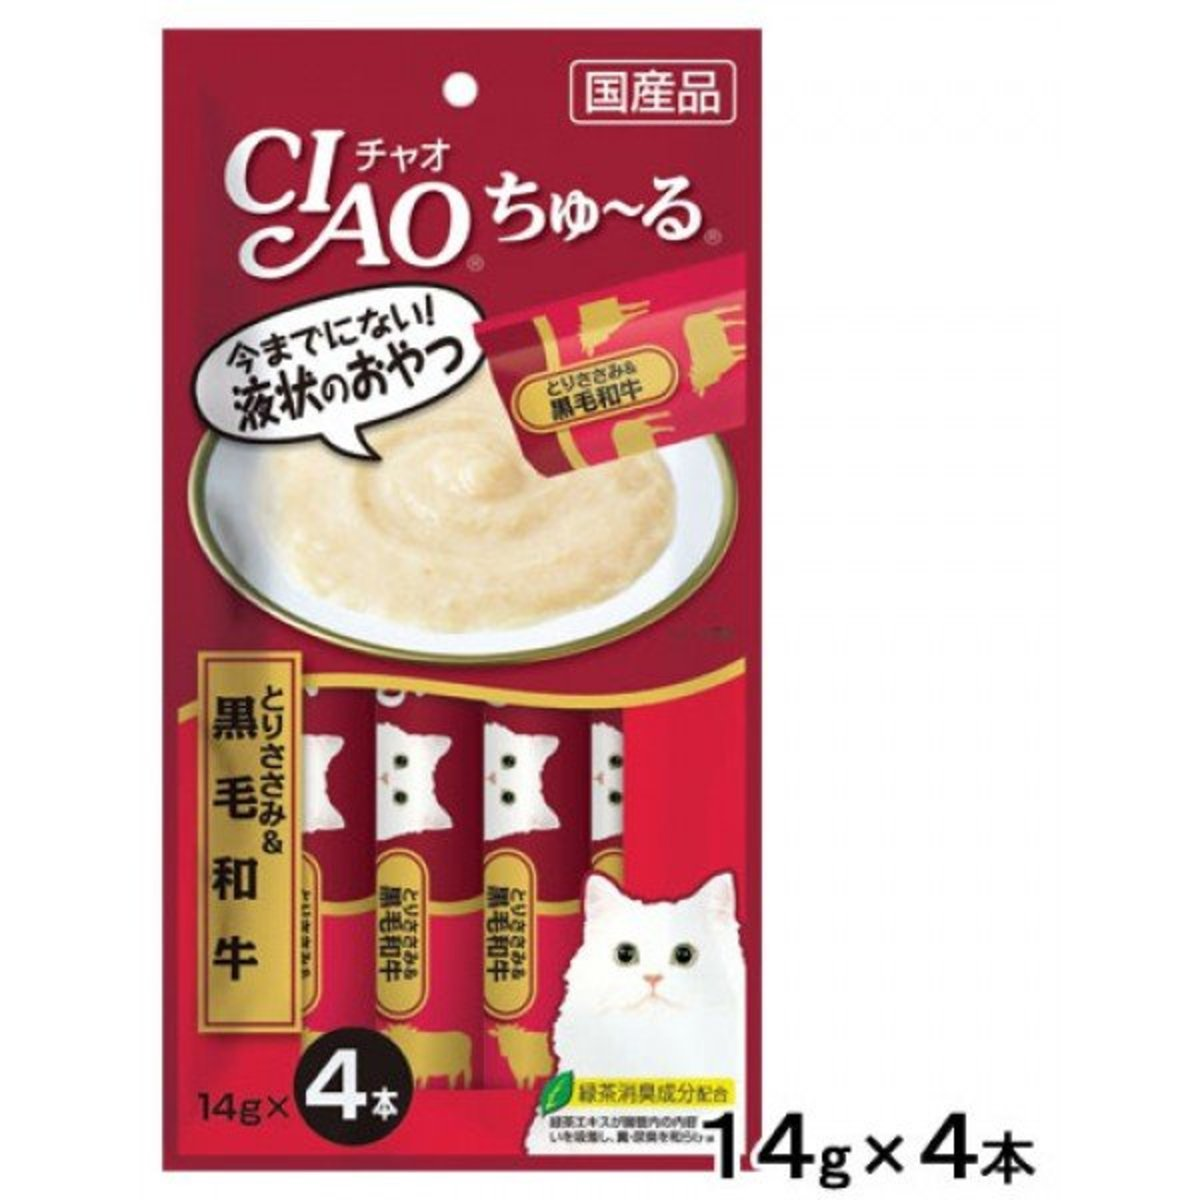 Japanese CIAO Meat Clay Meal Chicken Black Wagyu Beef Sauce 56g (SC-144) Silver Brown